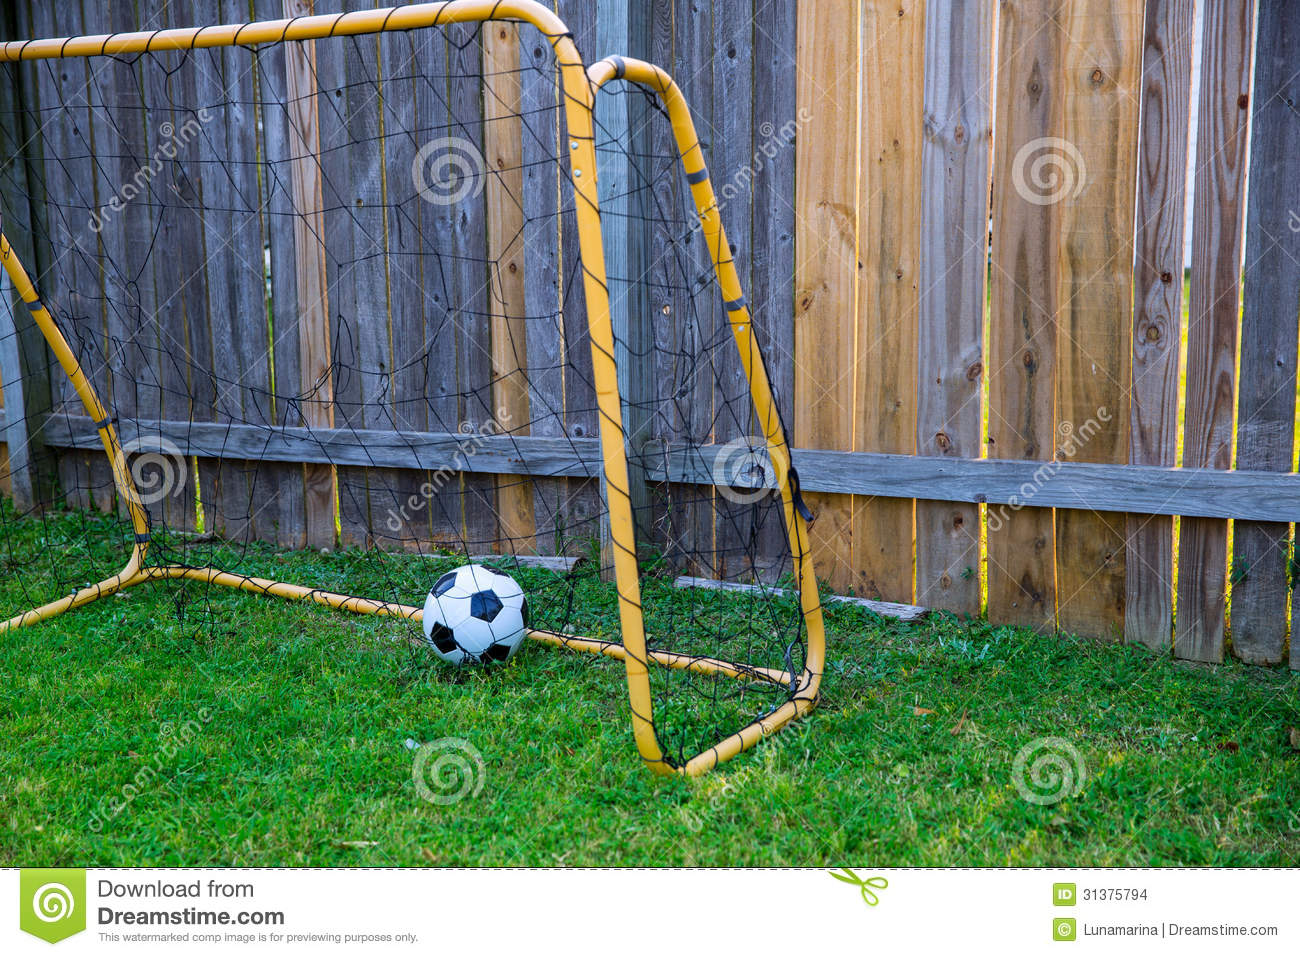 backyard chldren soccer goal at the wood fence with leather ball on